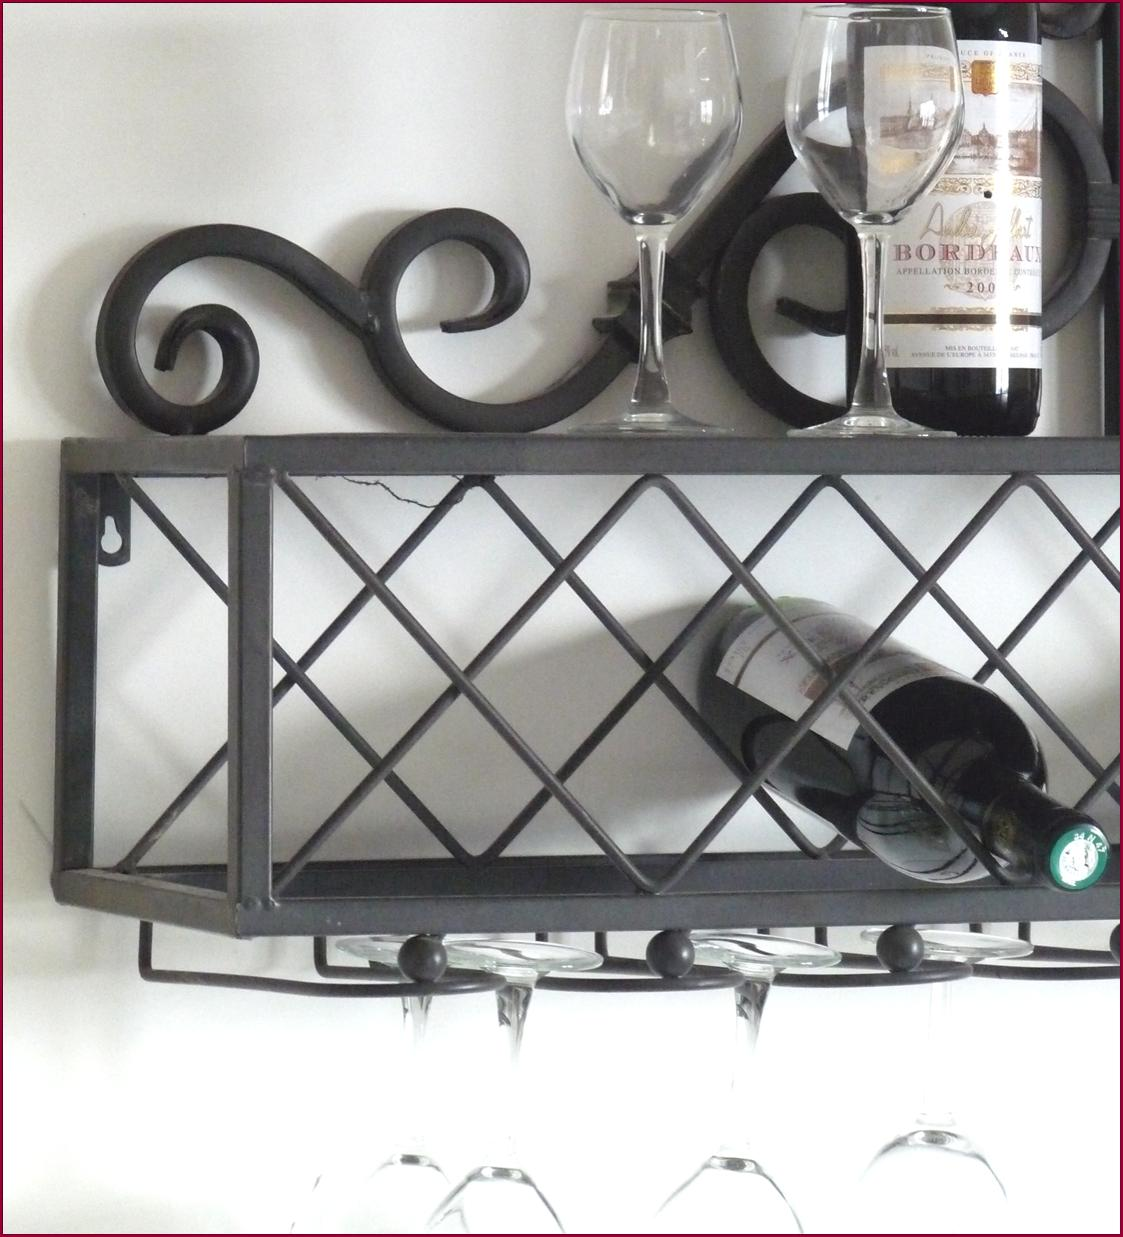 etagere console porte bouteille verre cave a vin bar de. Black Bedroom Furniture Sets. Home Design Ideas